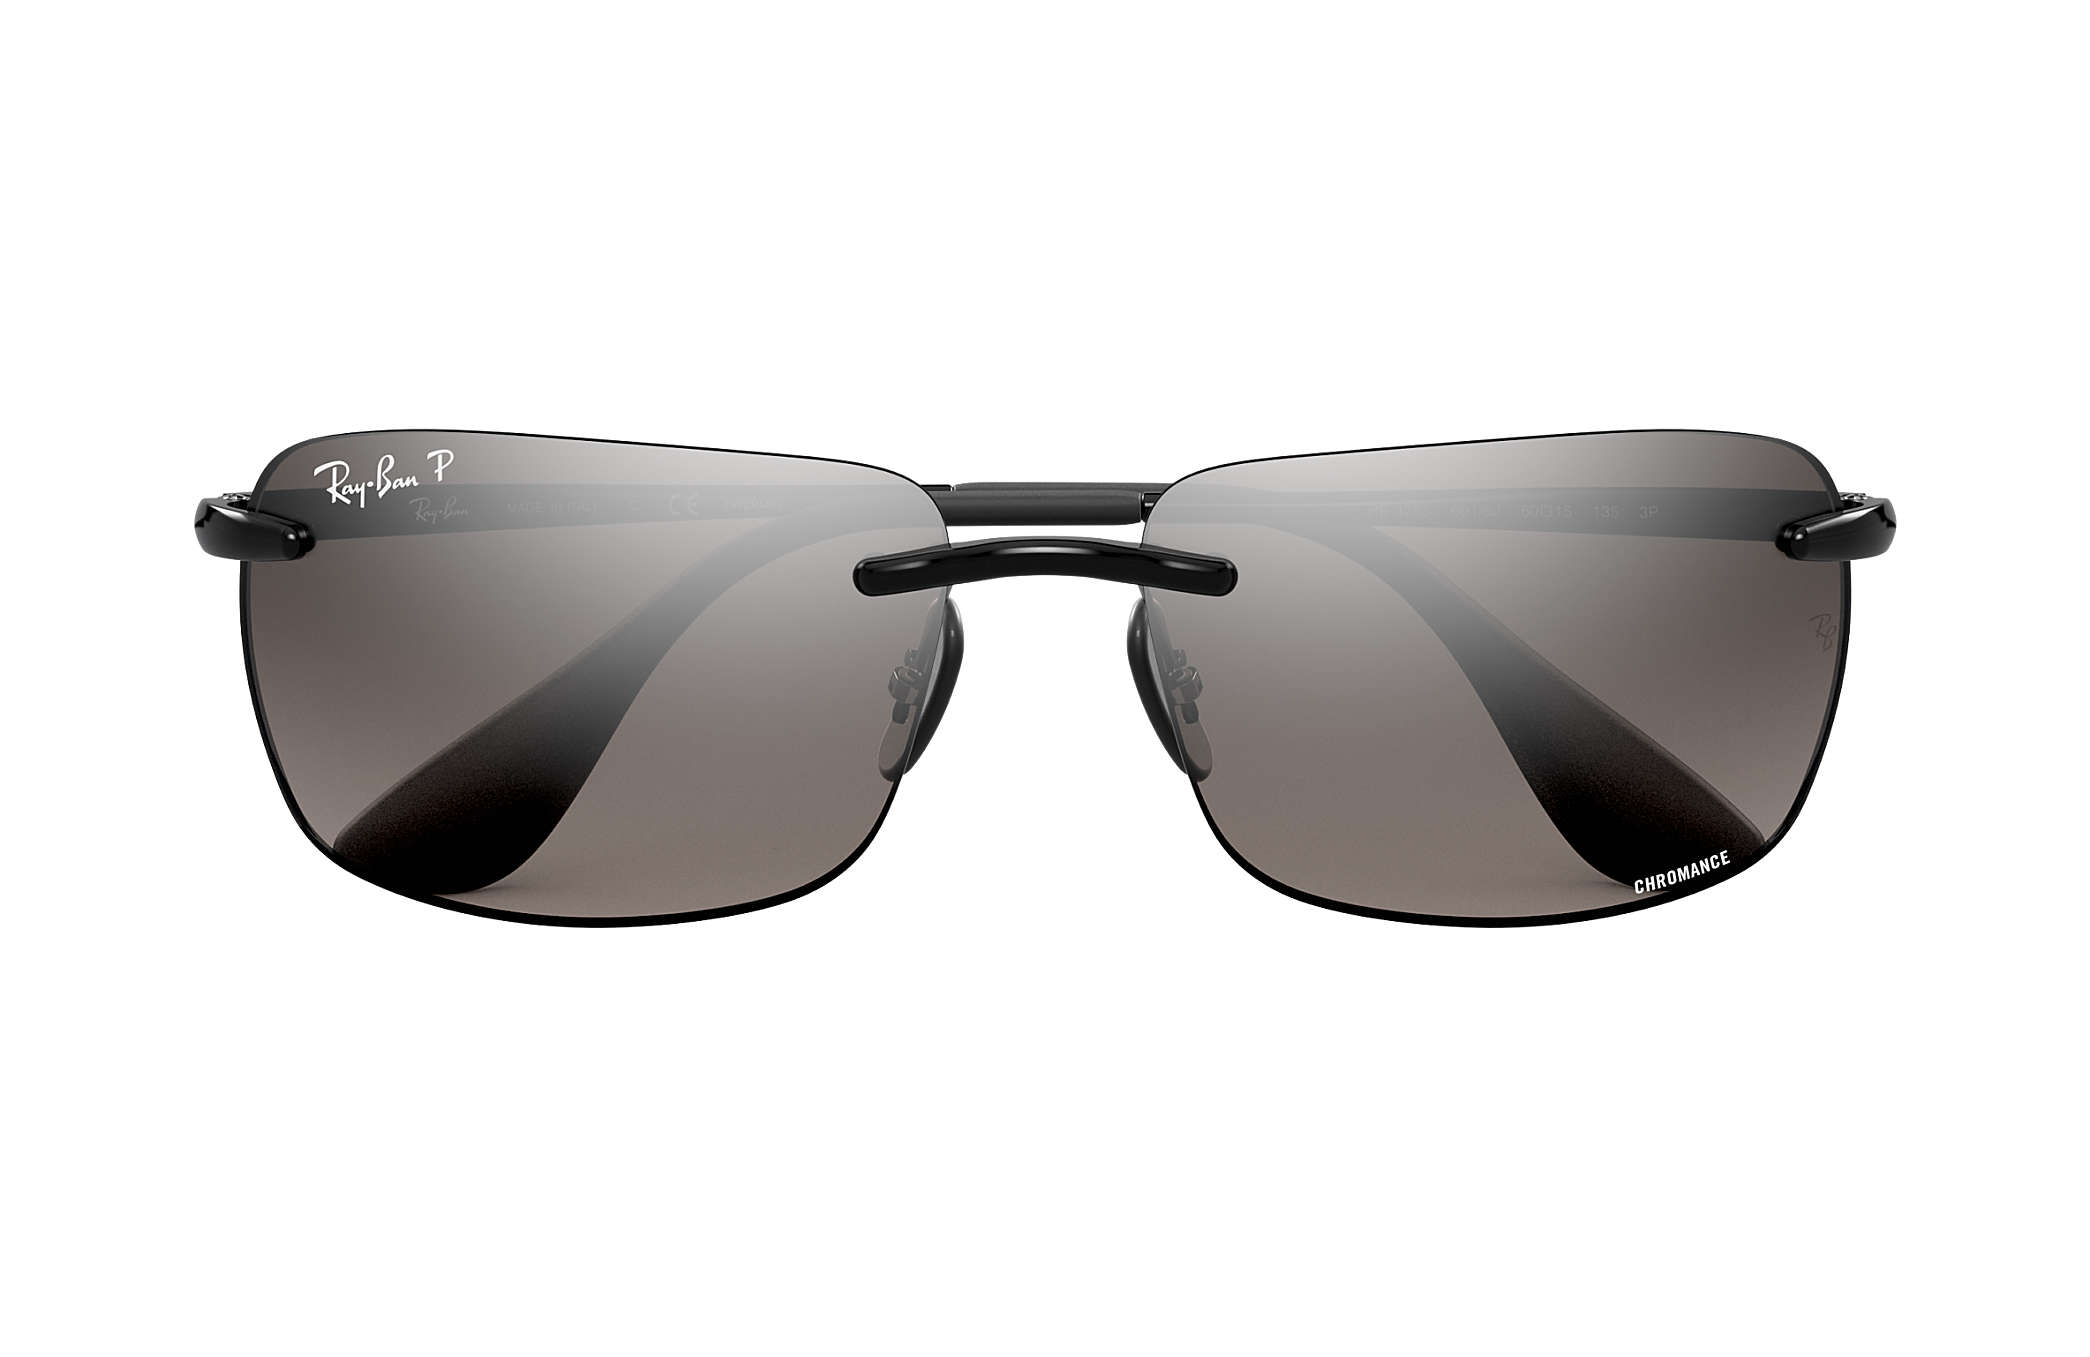 6287bd997d Ray-Ban Rb4255 Chromance RB4255 Black - Injected - Silver Polarized ...